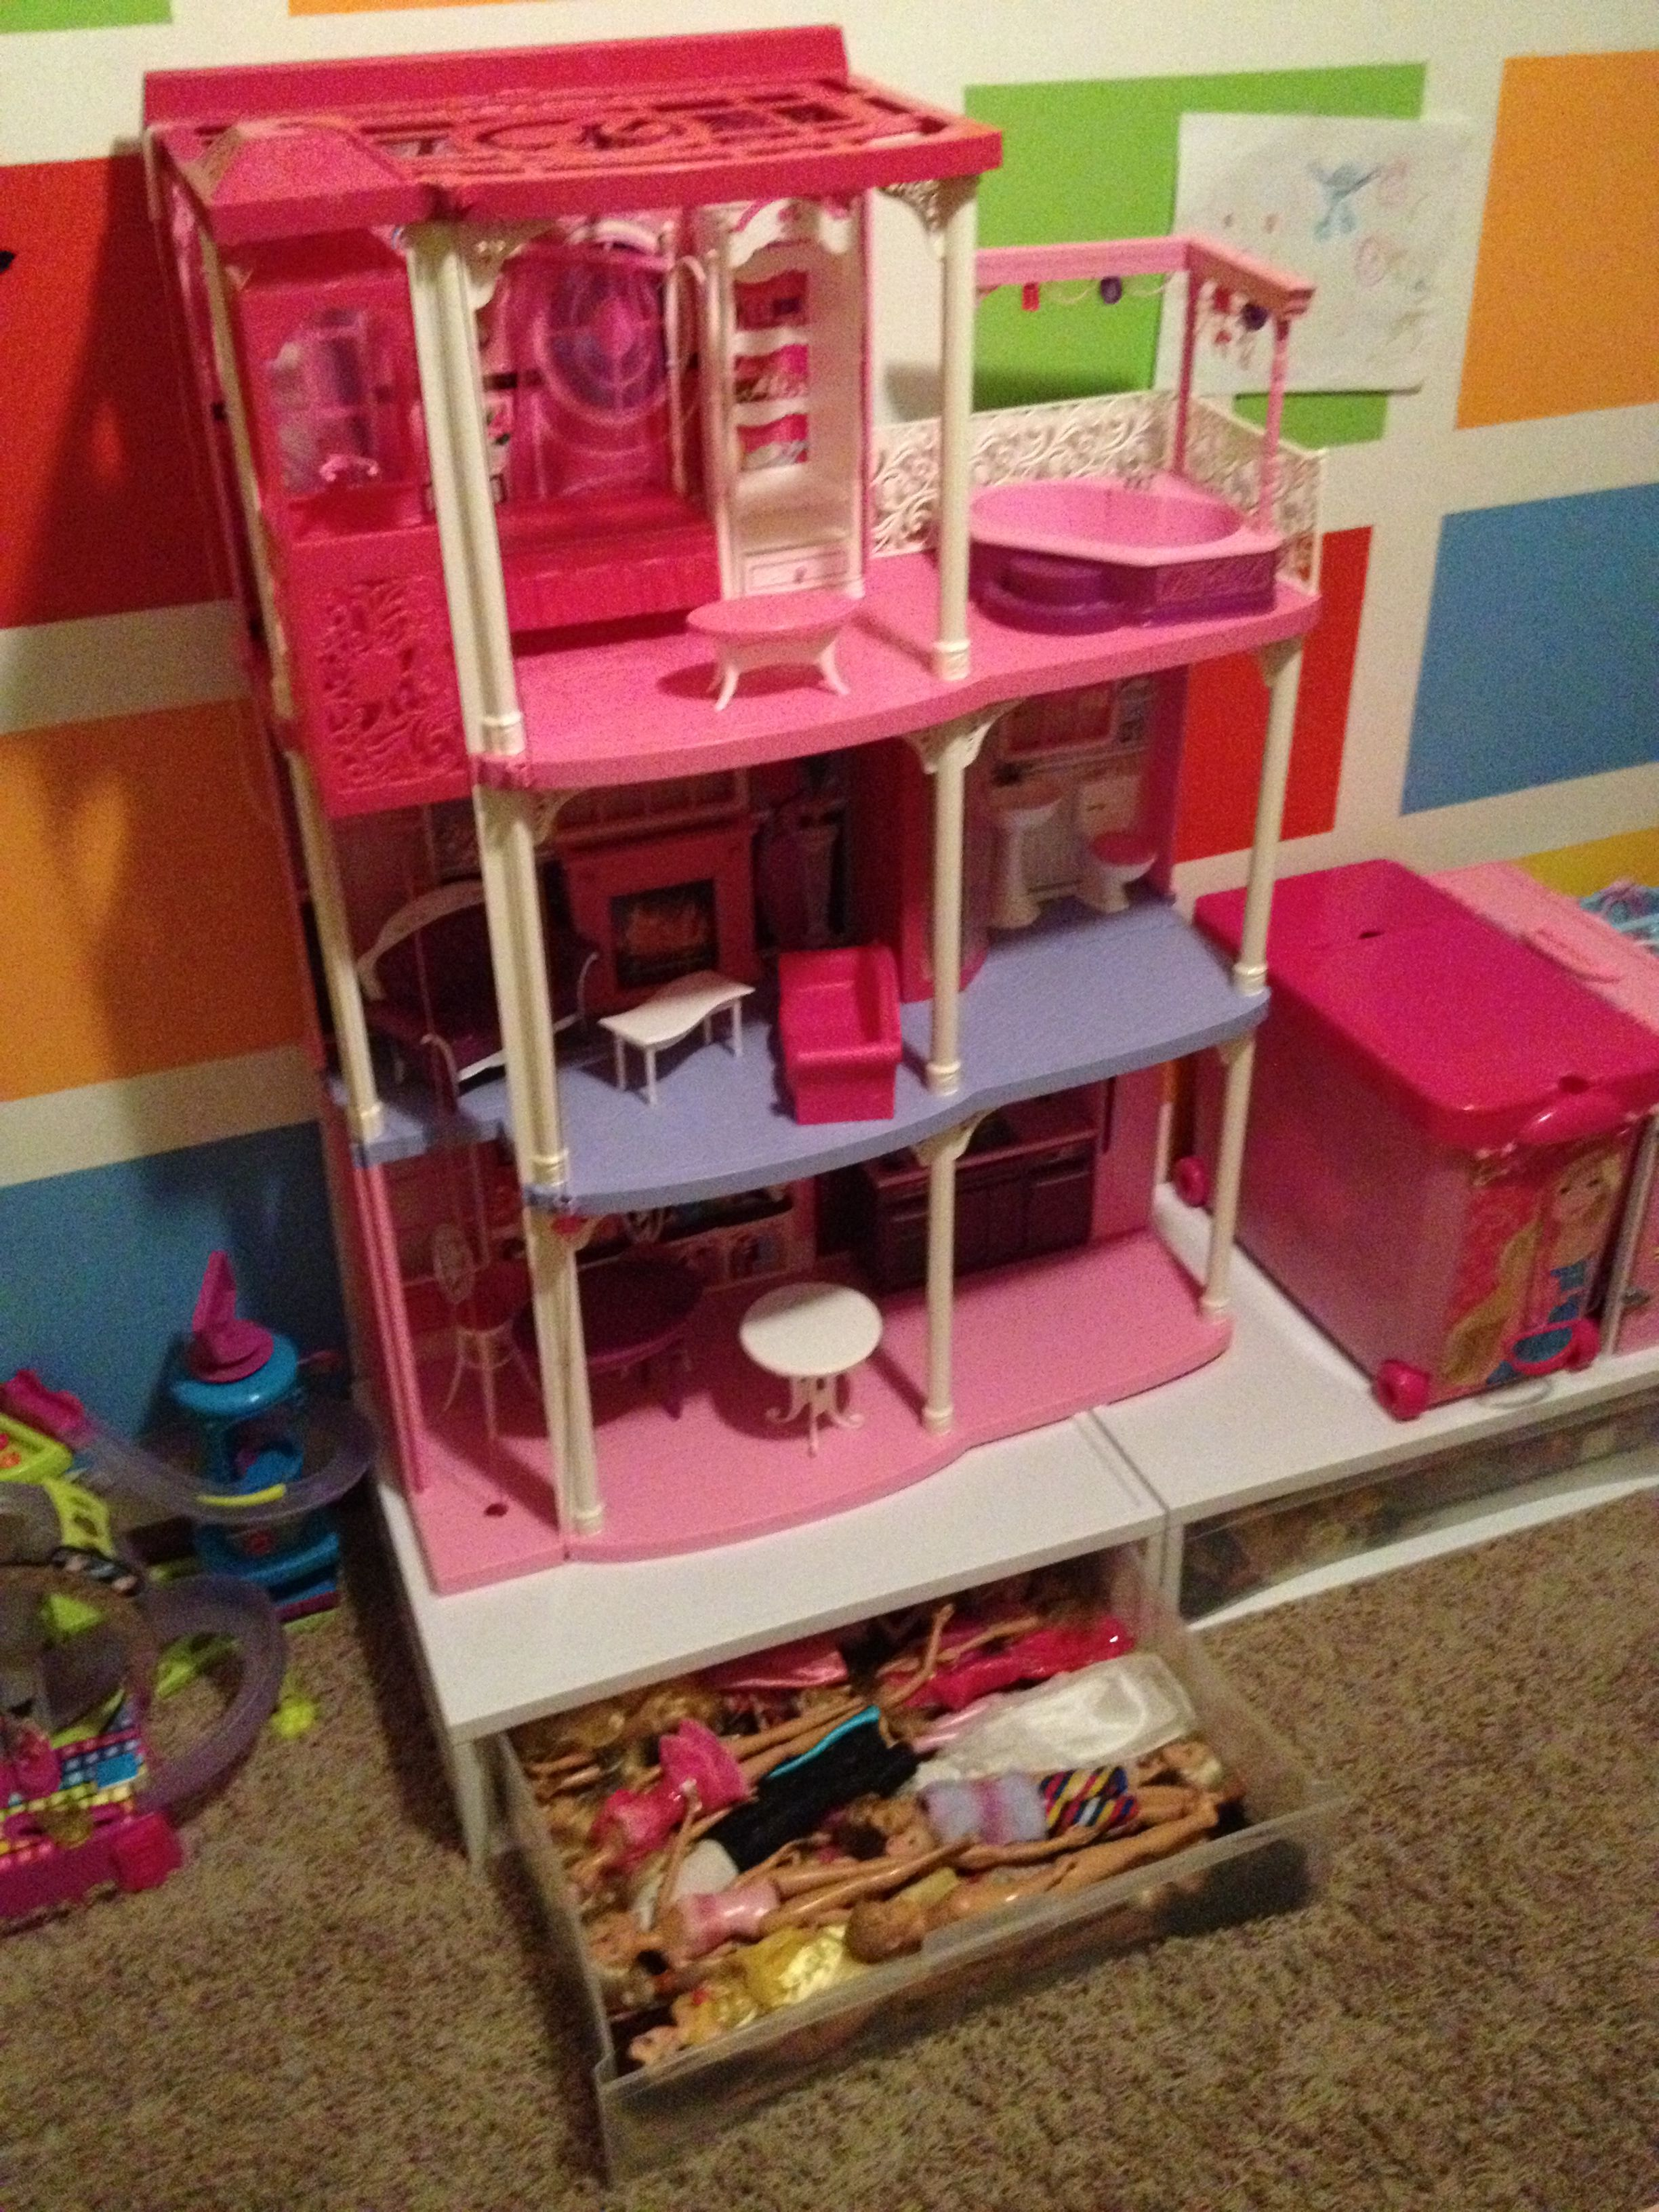 Plastic Storage Drawers Under The Barbie Dream House So